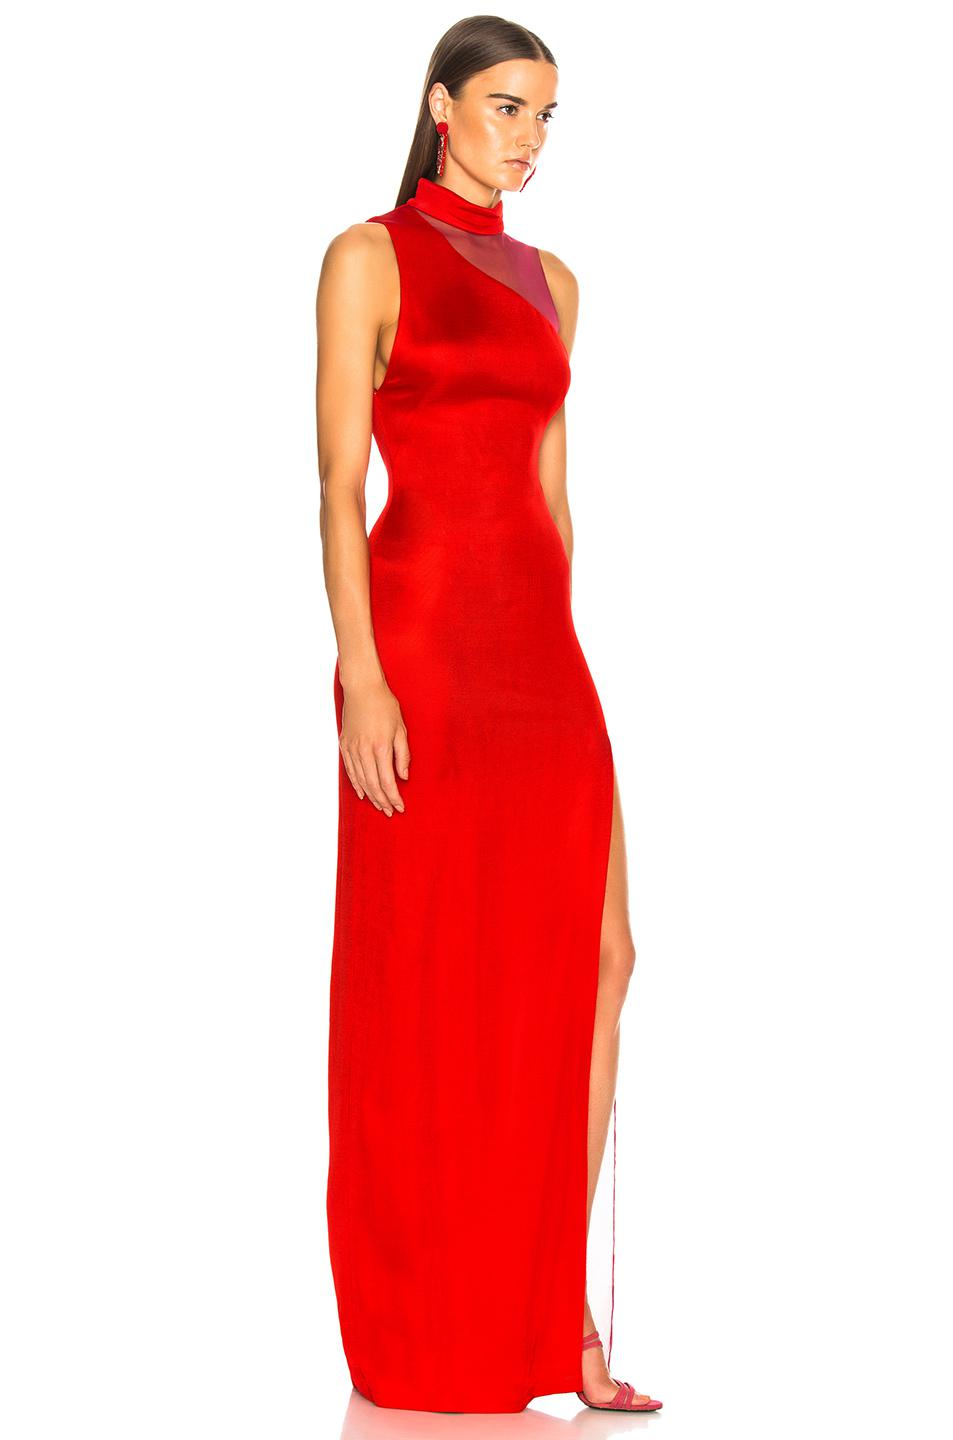 59c85ca4ae9 Galvan London Shadow Dress in Red - Save 55% - Lyst